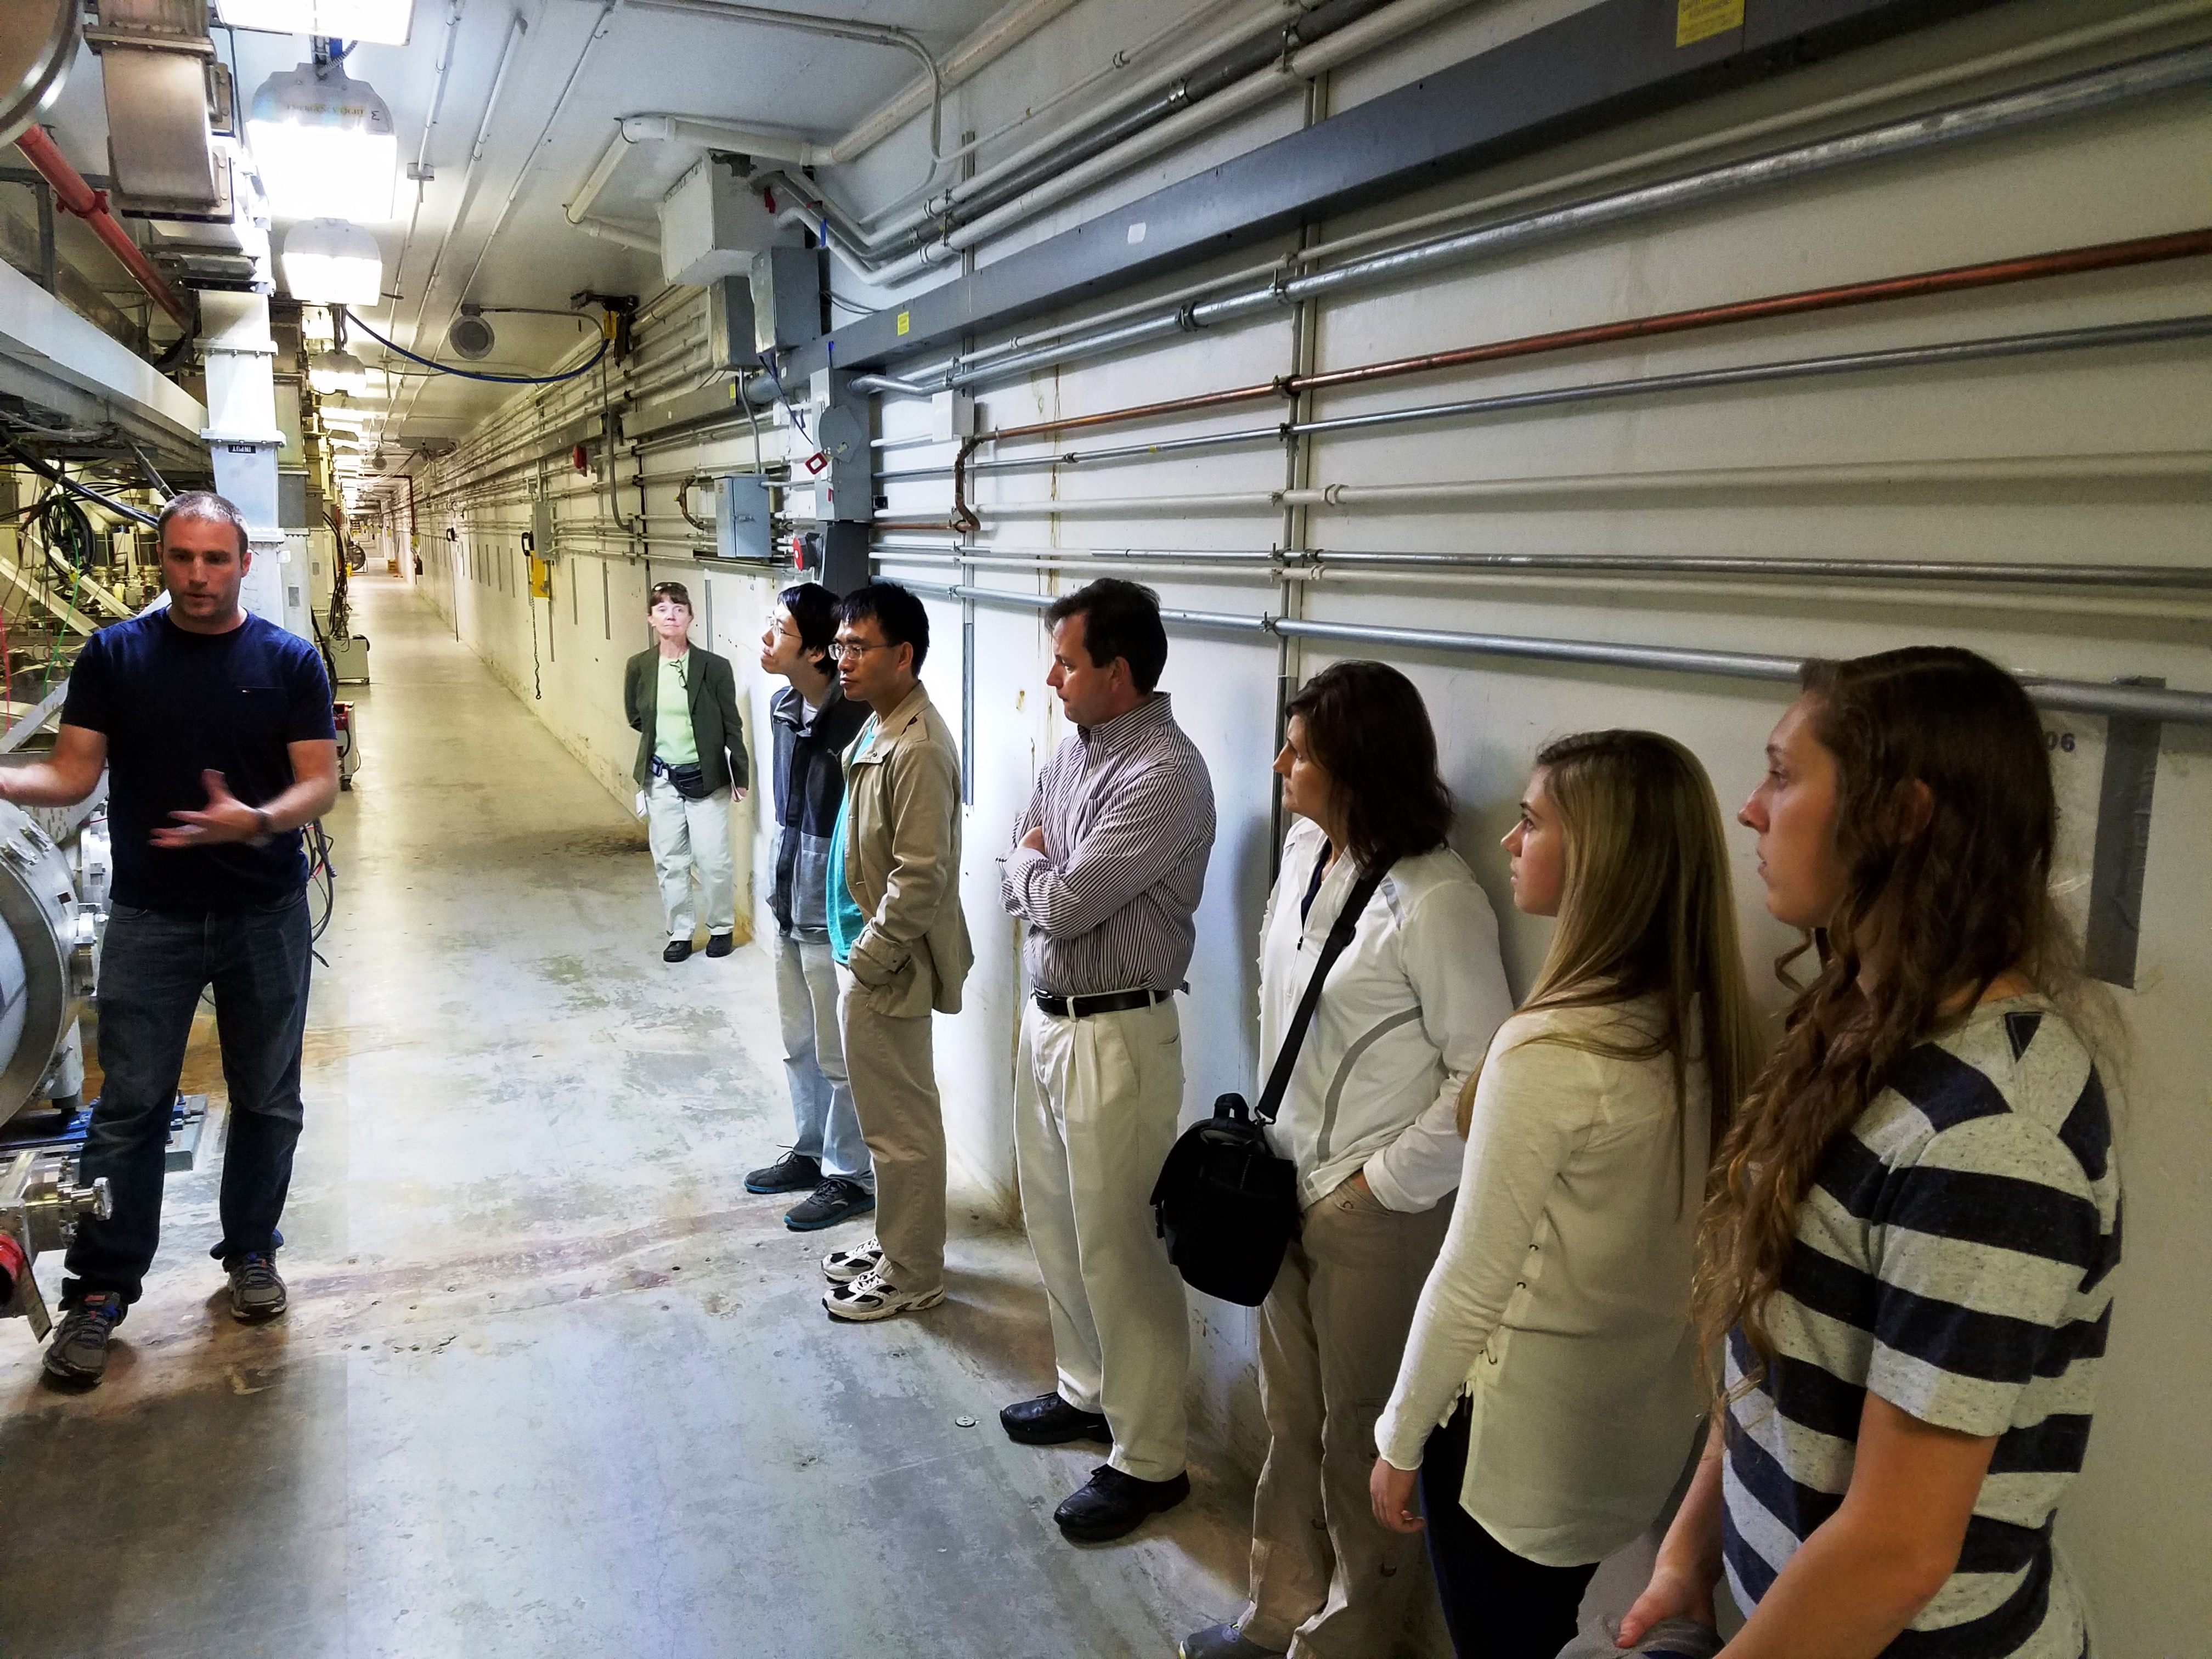 Mike Aiken (left) leads a group of high school students in a tour of the accelerator tunnel, May 2017.